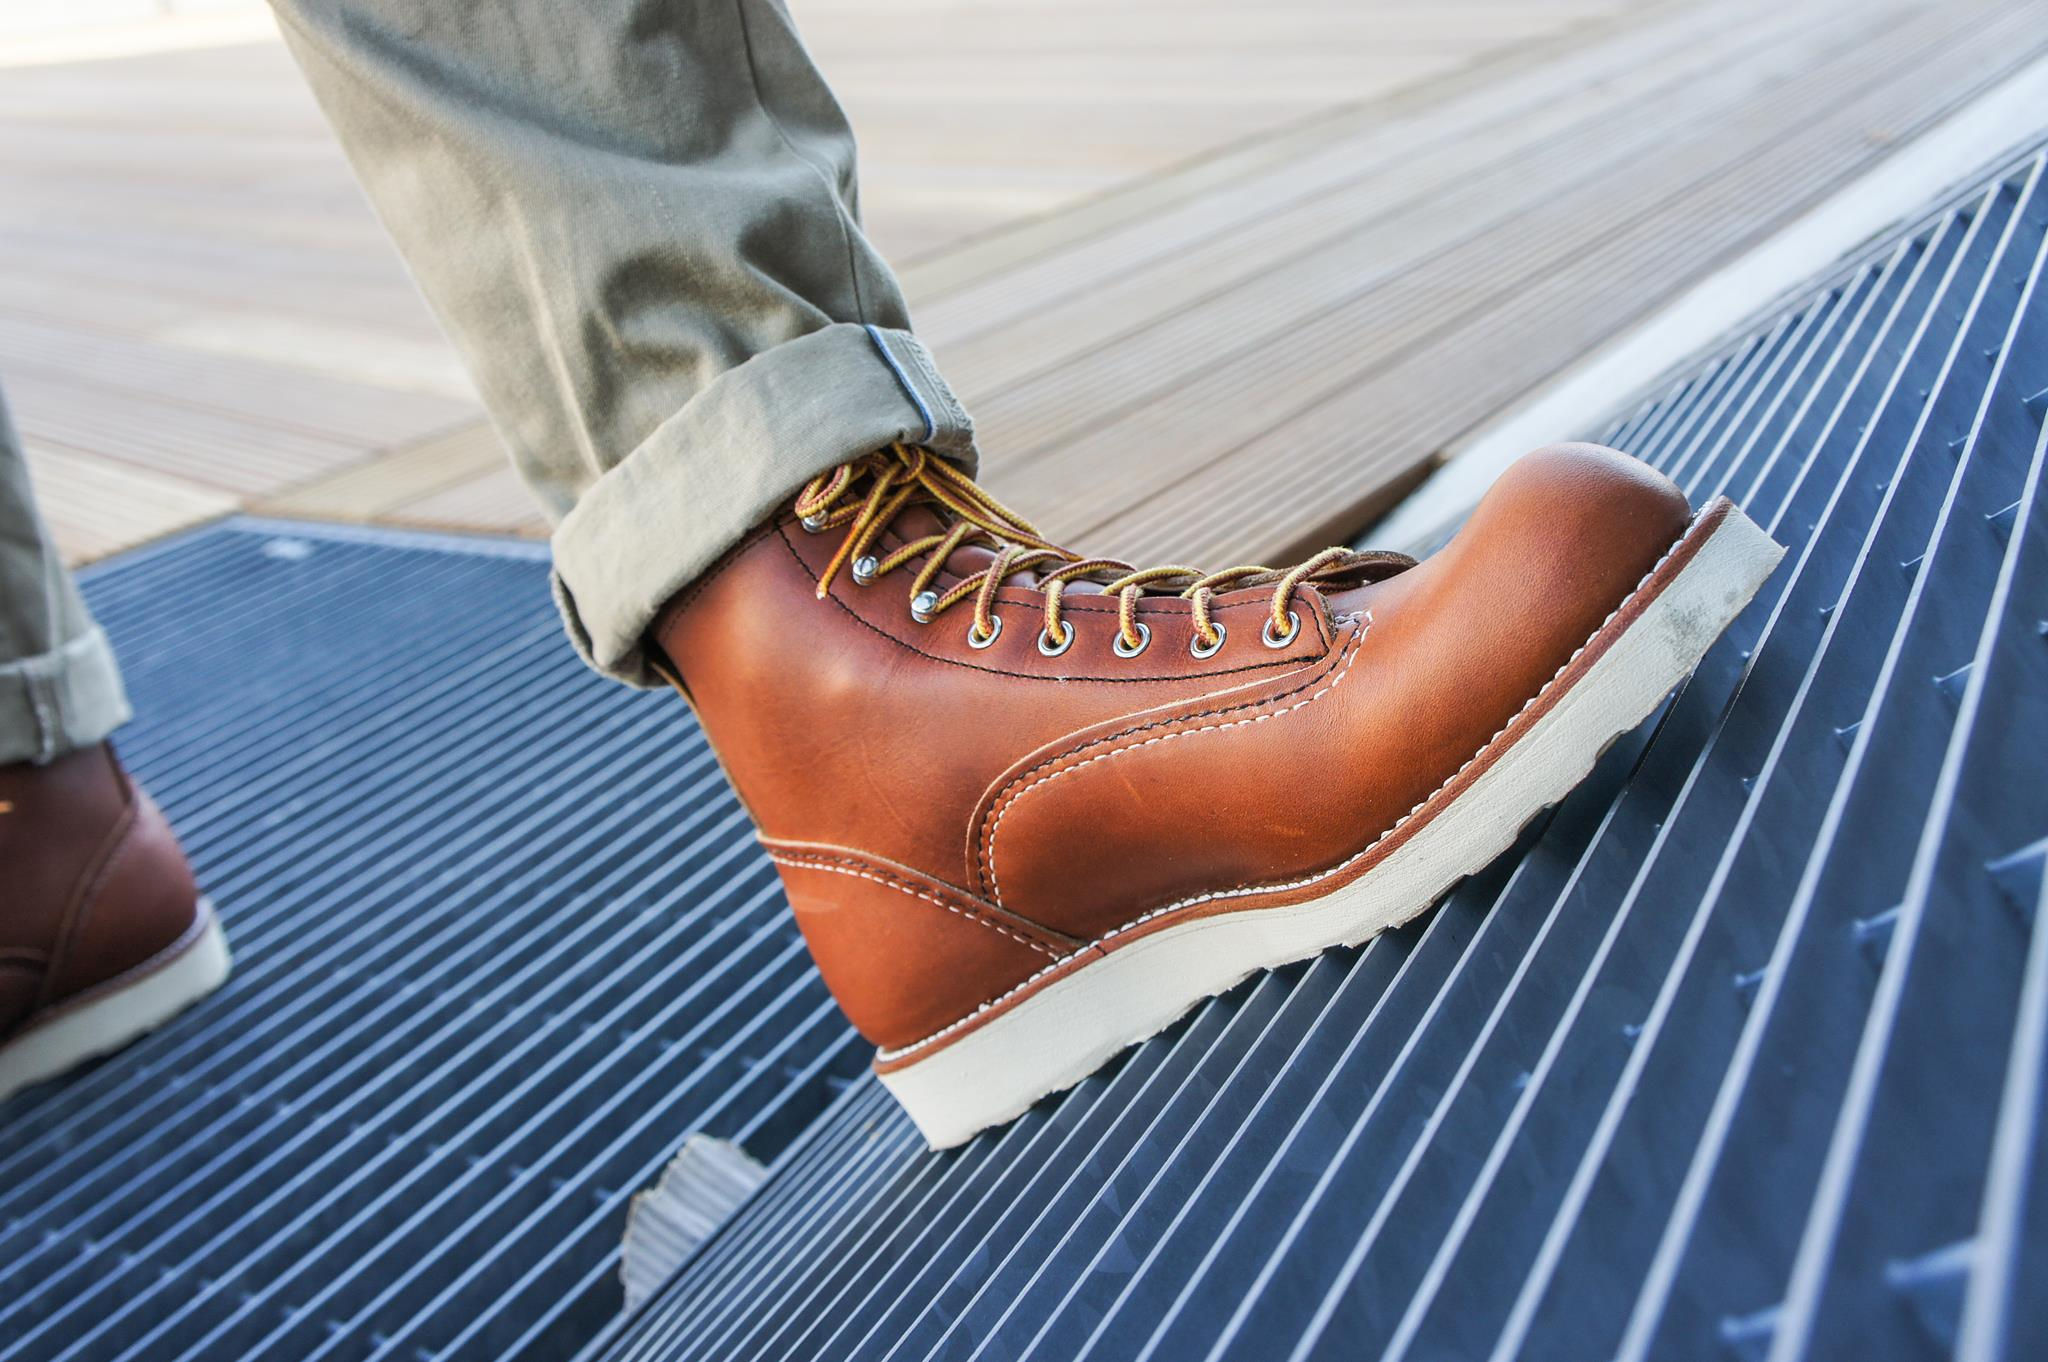 22 Best Roofing Shoes Of 2020 Reviews Buying Guide